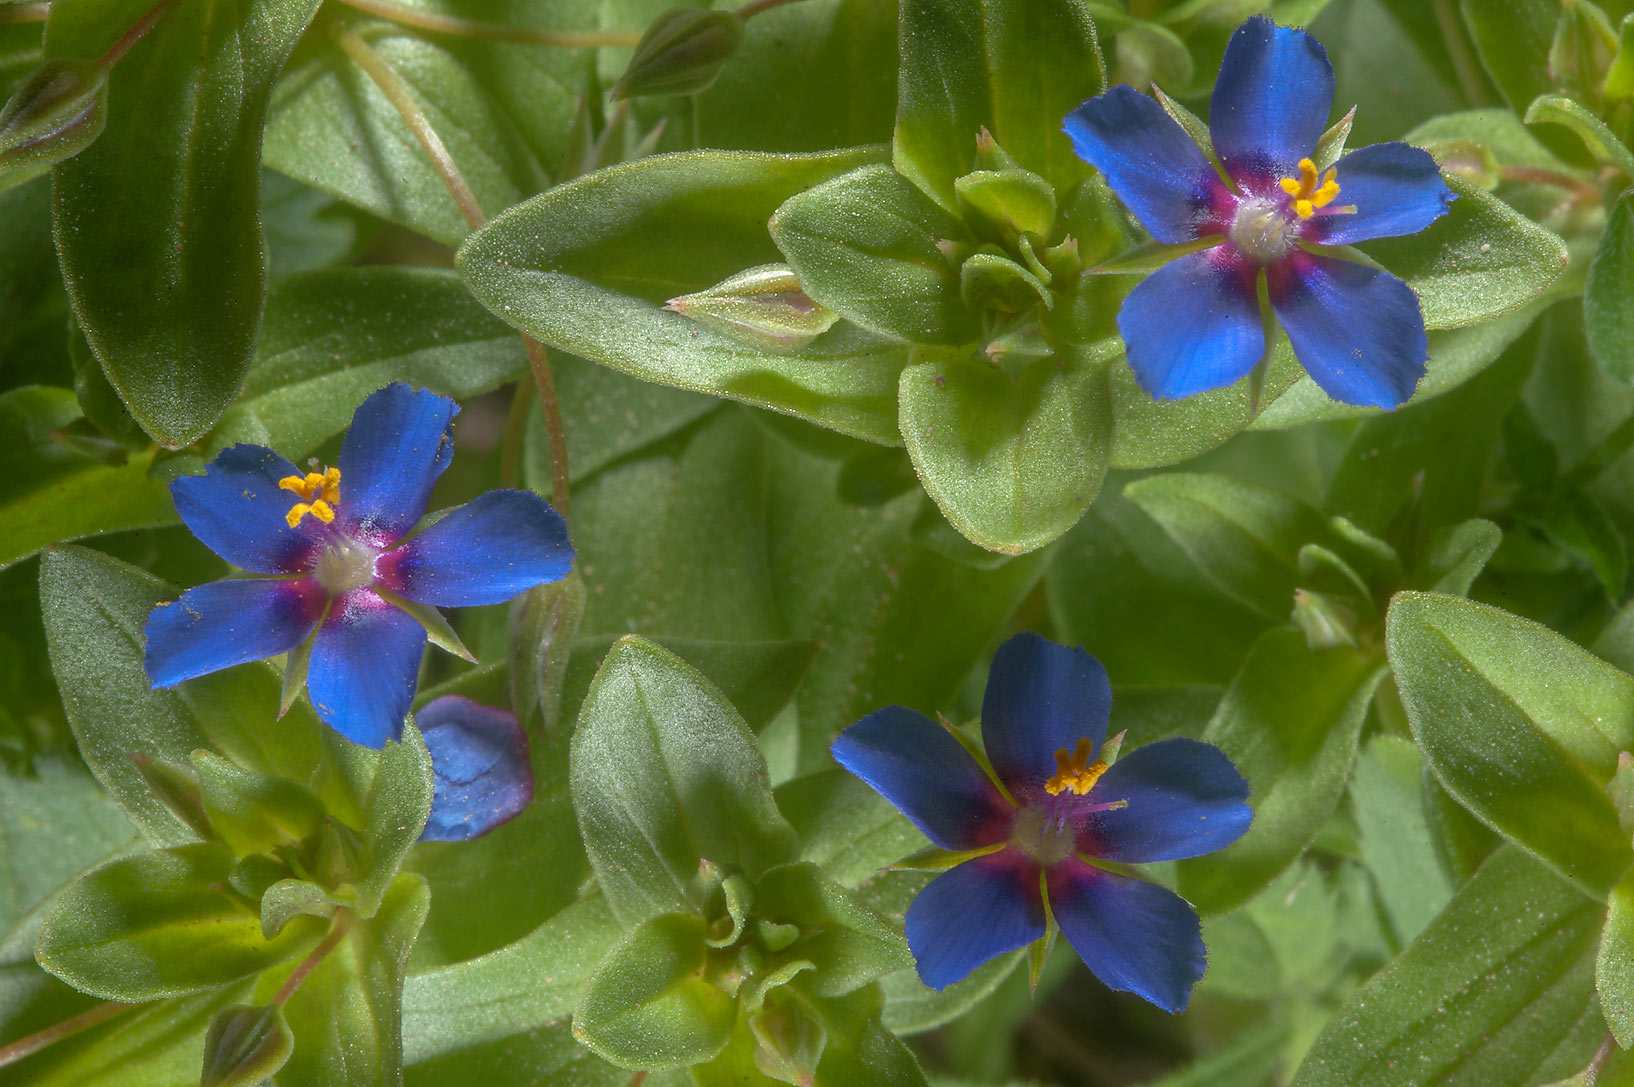 Blue flowers of scarlet pimpernel (Anagallis...Farms, on north-eastern coast. Qatar